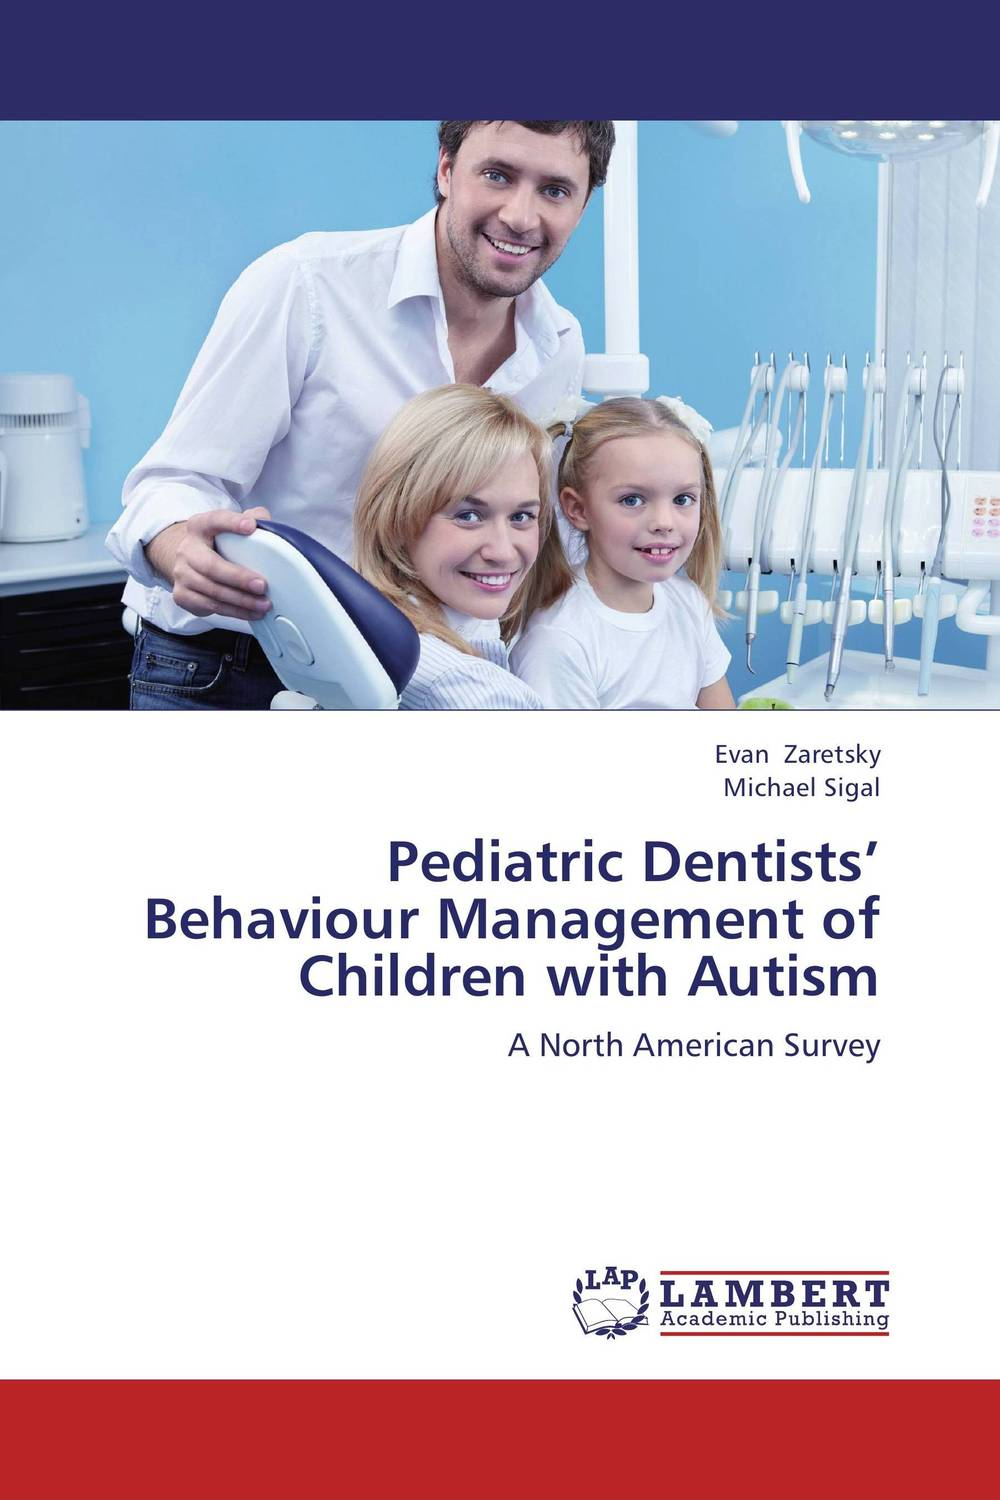 Pediatric Dentists' Behaviour Management of Children with Autism driven to distraction